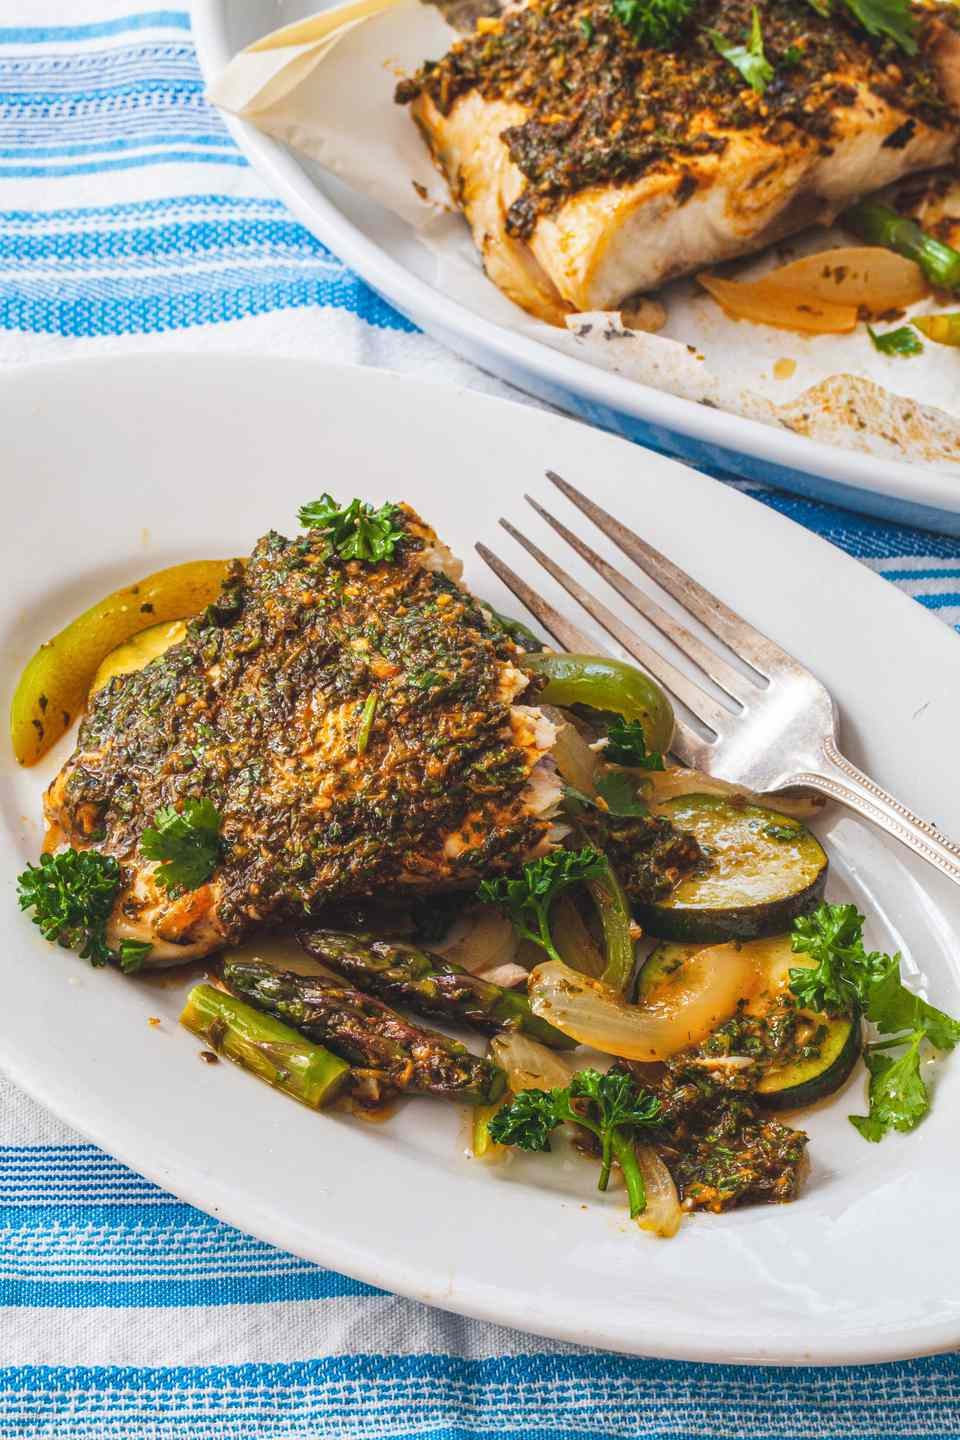 Parchment Baked Fish with North African Chermoula on a plate with a blue and white striped linen underneath.